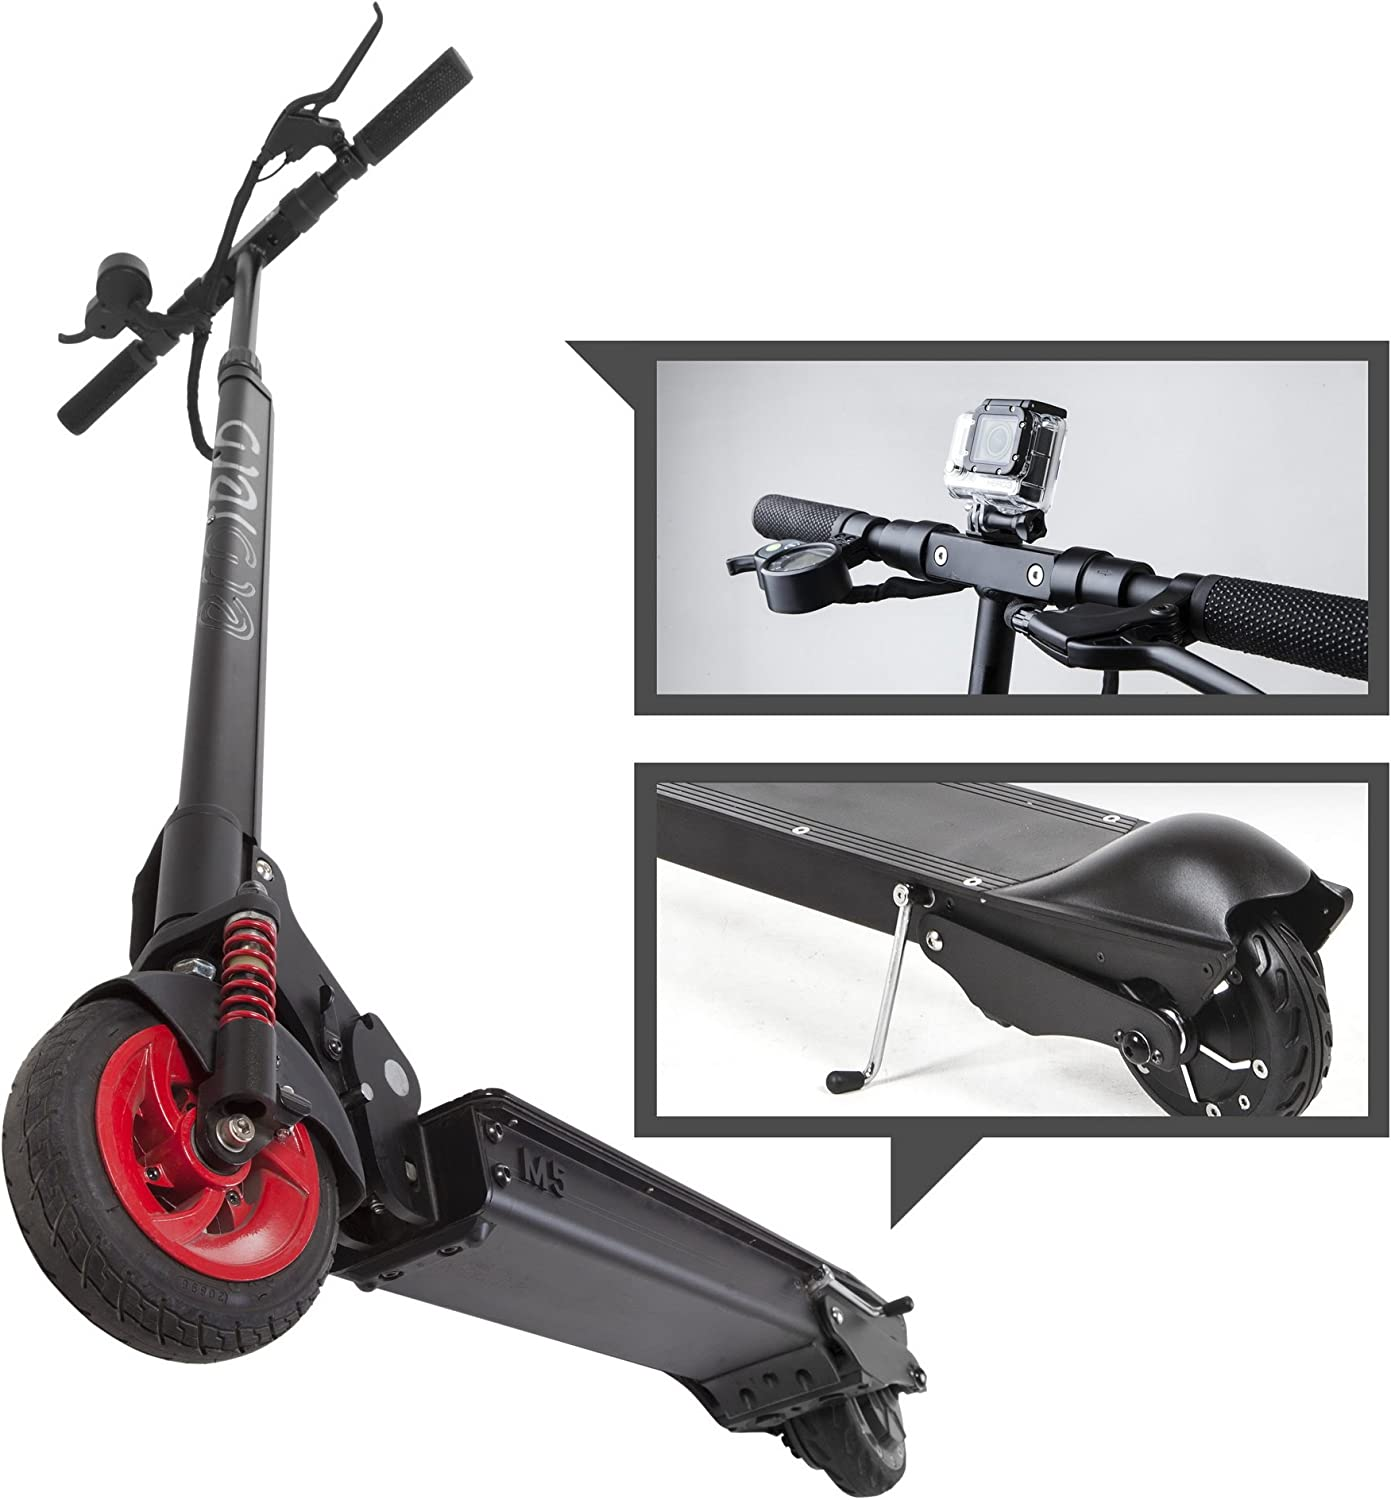 Top Lightest Electric Scooters In '2021' – The Most Compact and Lightweight 4